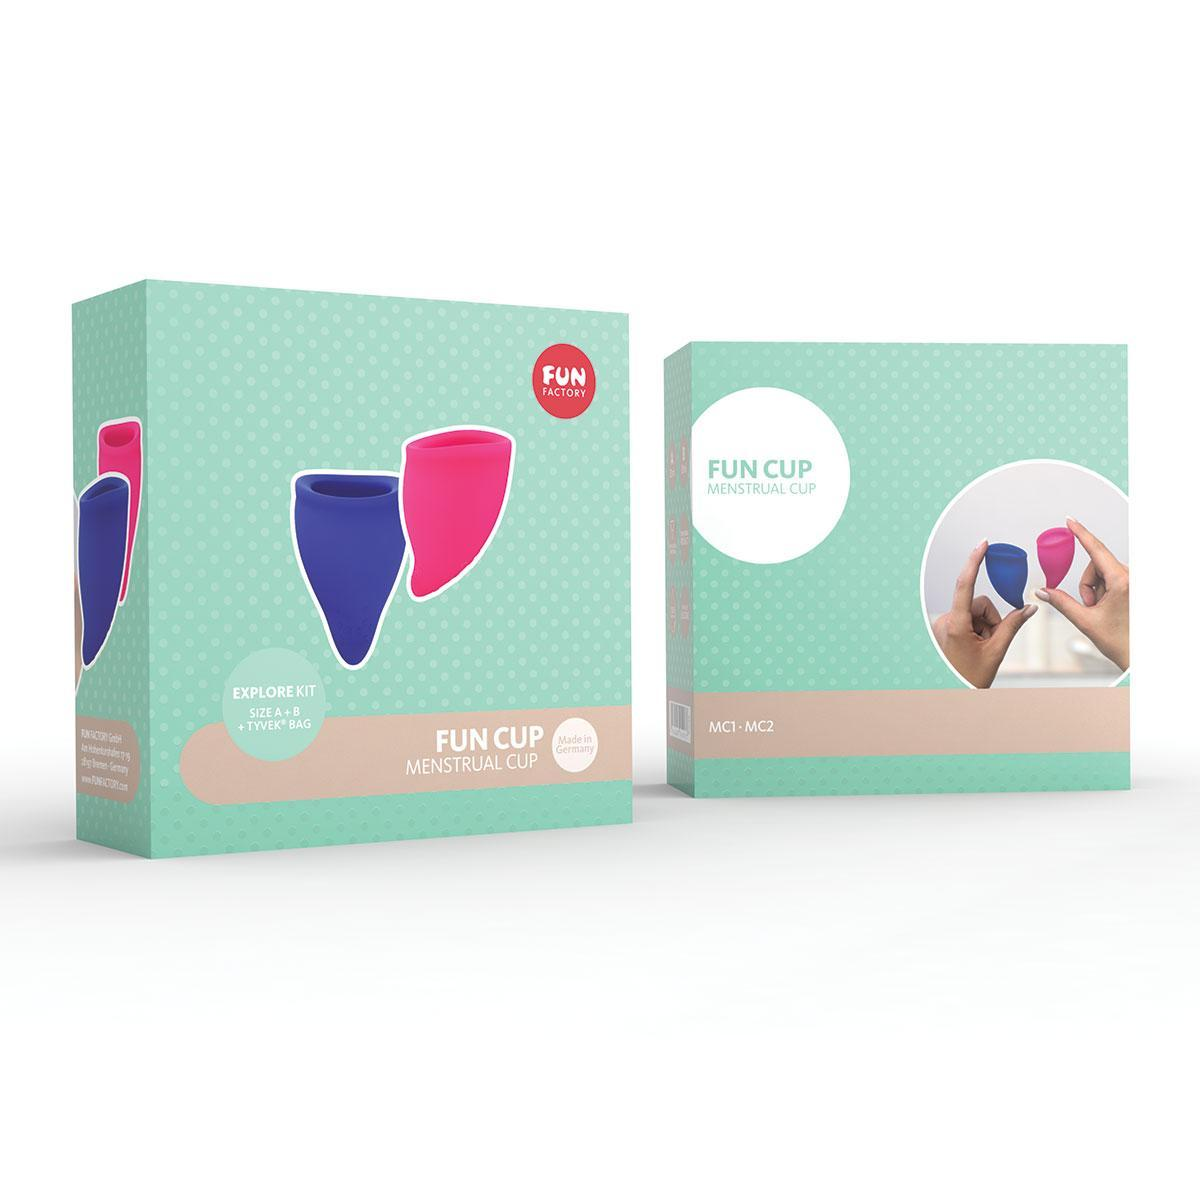 Fun Factory Fun Cup - Explore Kit